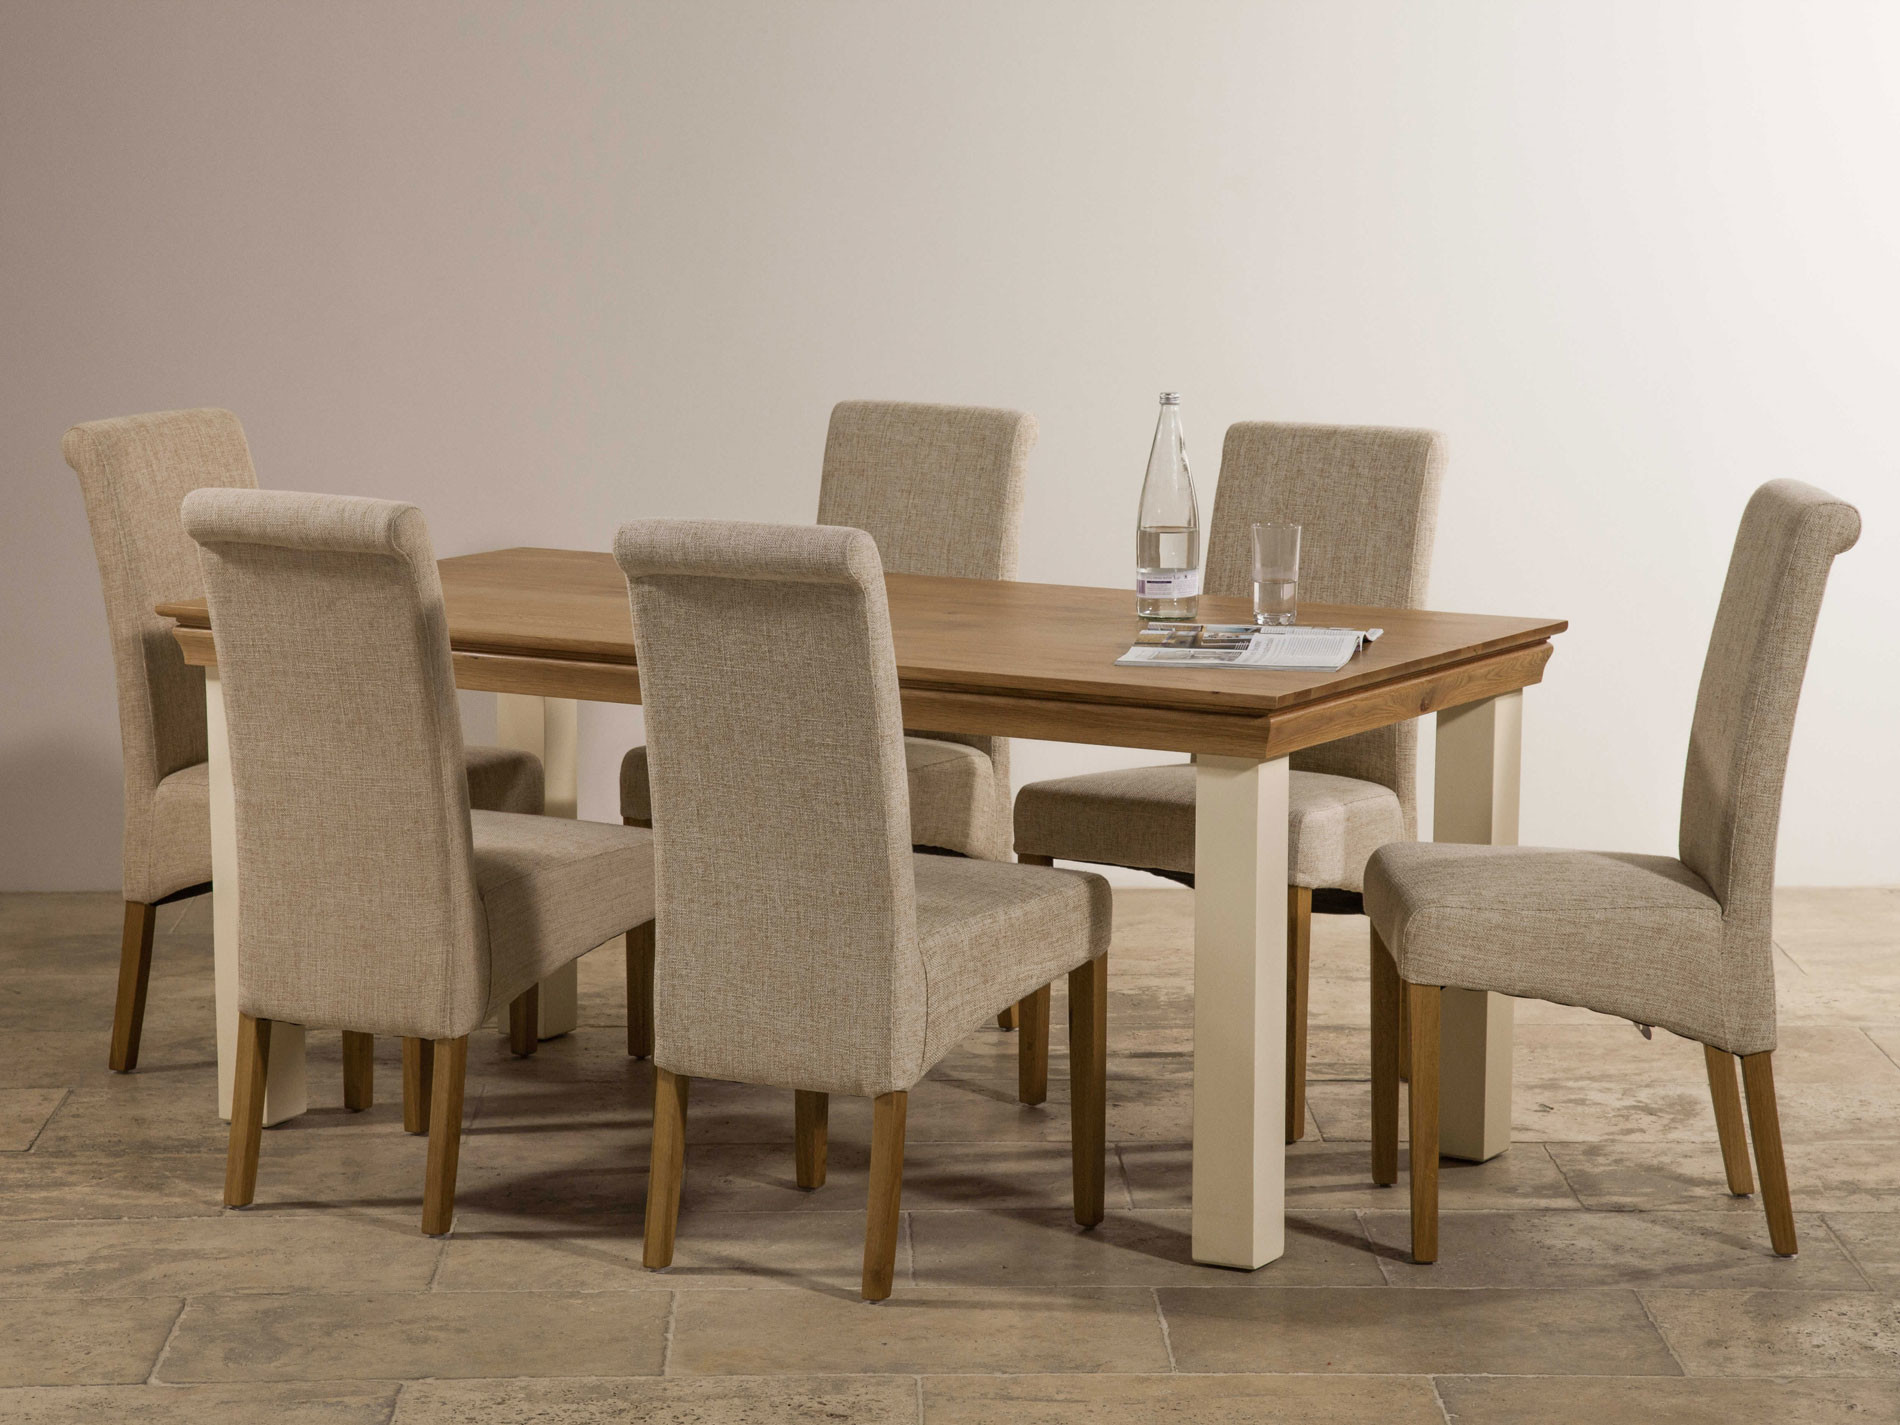 Country cottage natural oak and painted dining set 6ft table with 6 beige chairs - Natural oak dining table and chairs ...